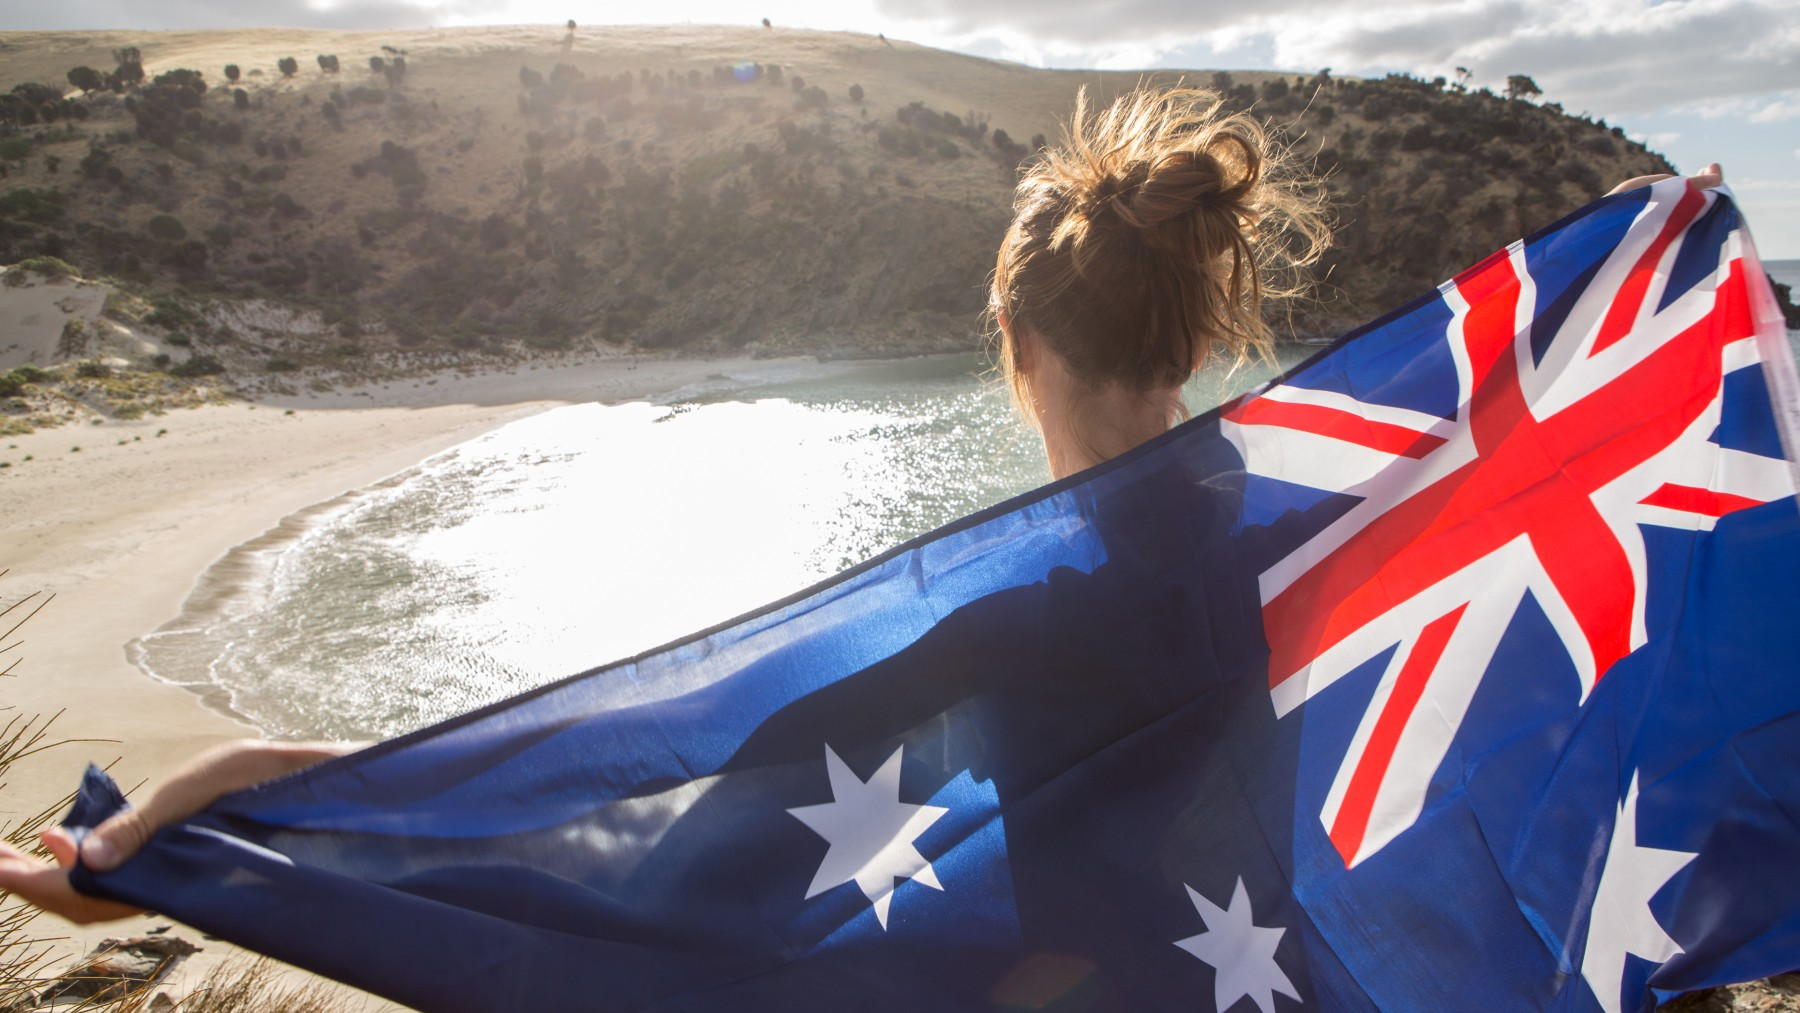 Cheerful young woman stands on a cliff above a beach in Kangaroo Island holding an Australian's flag